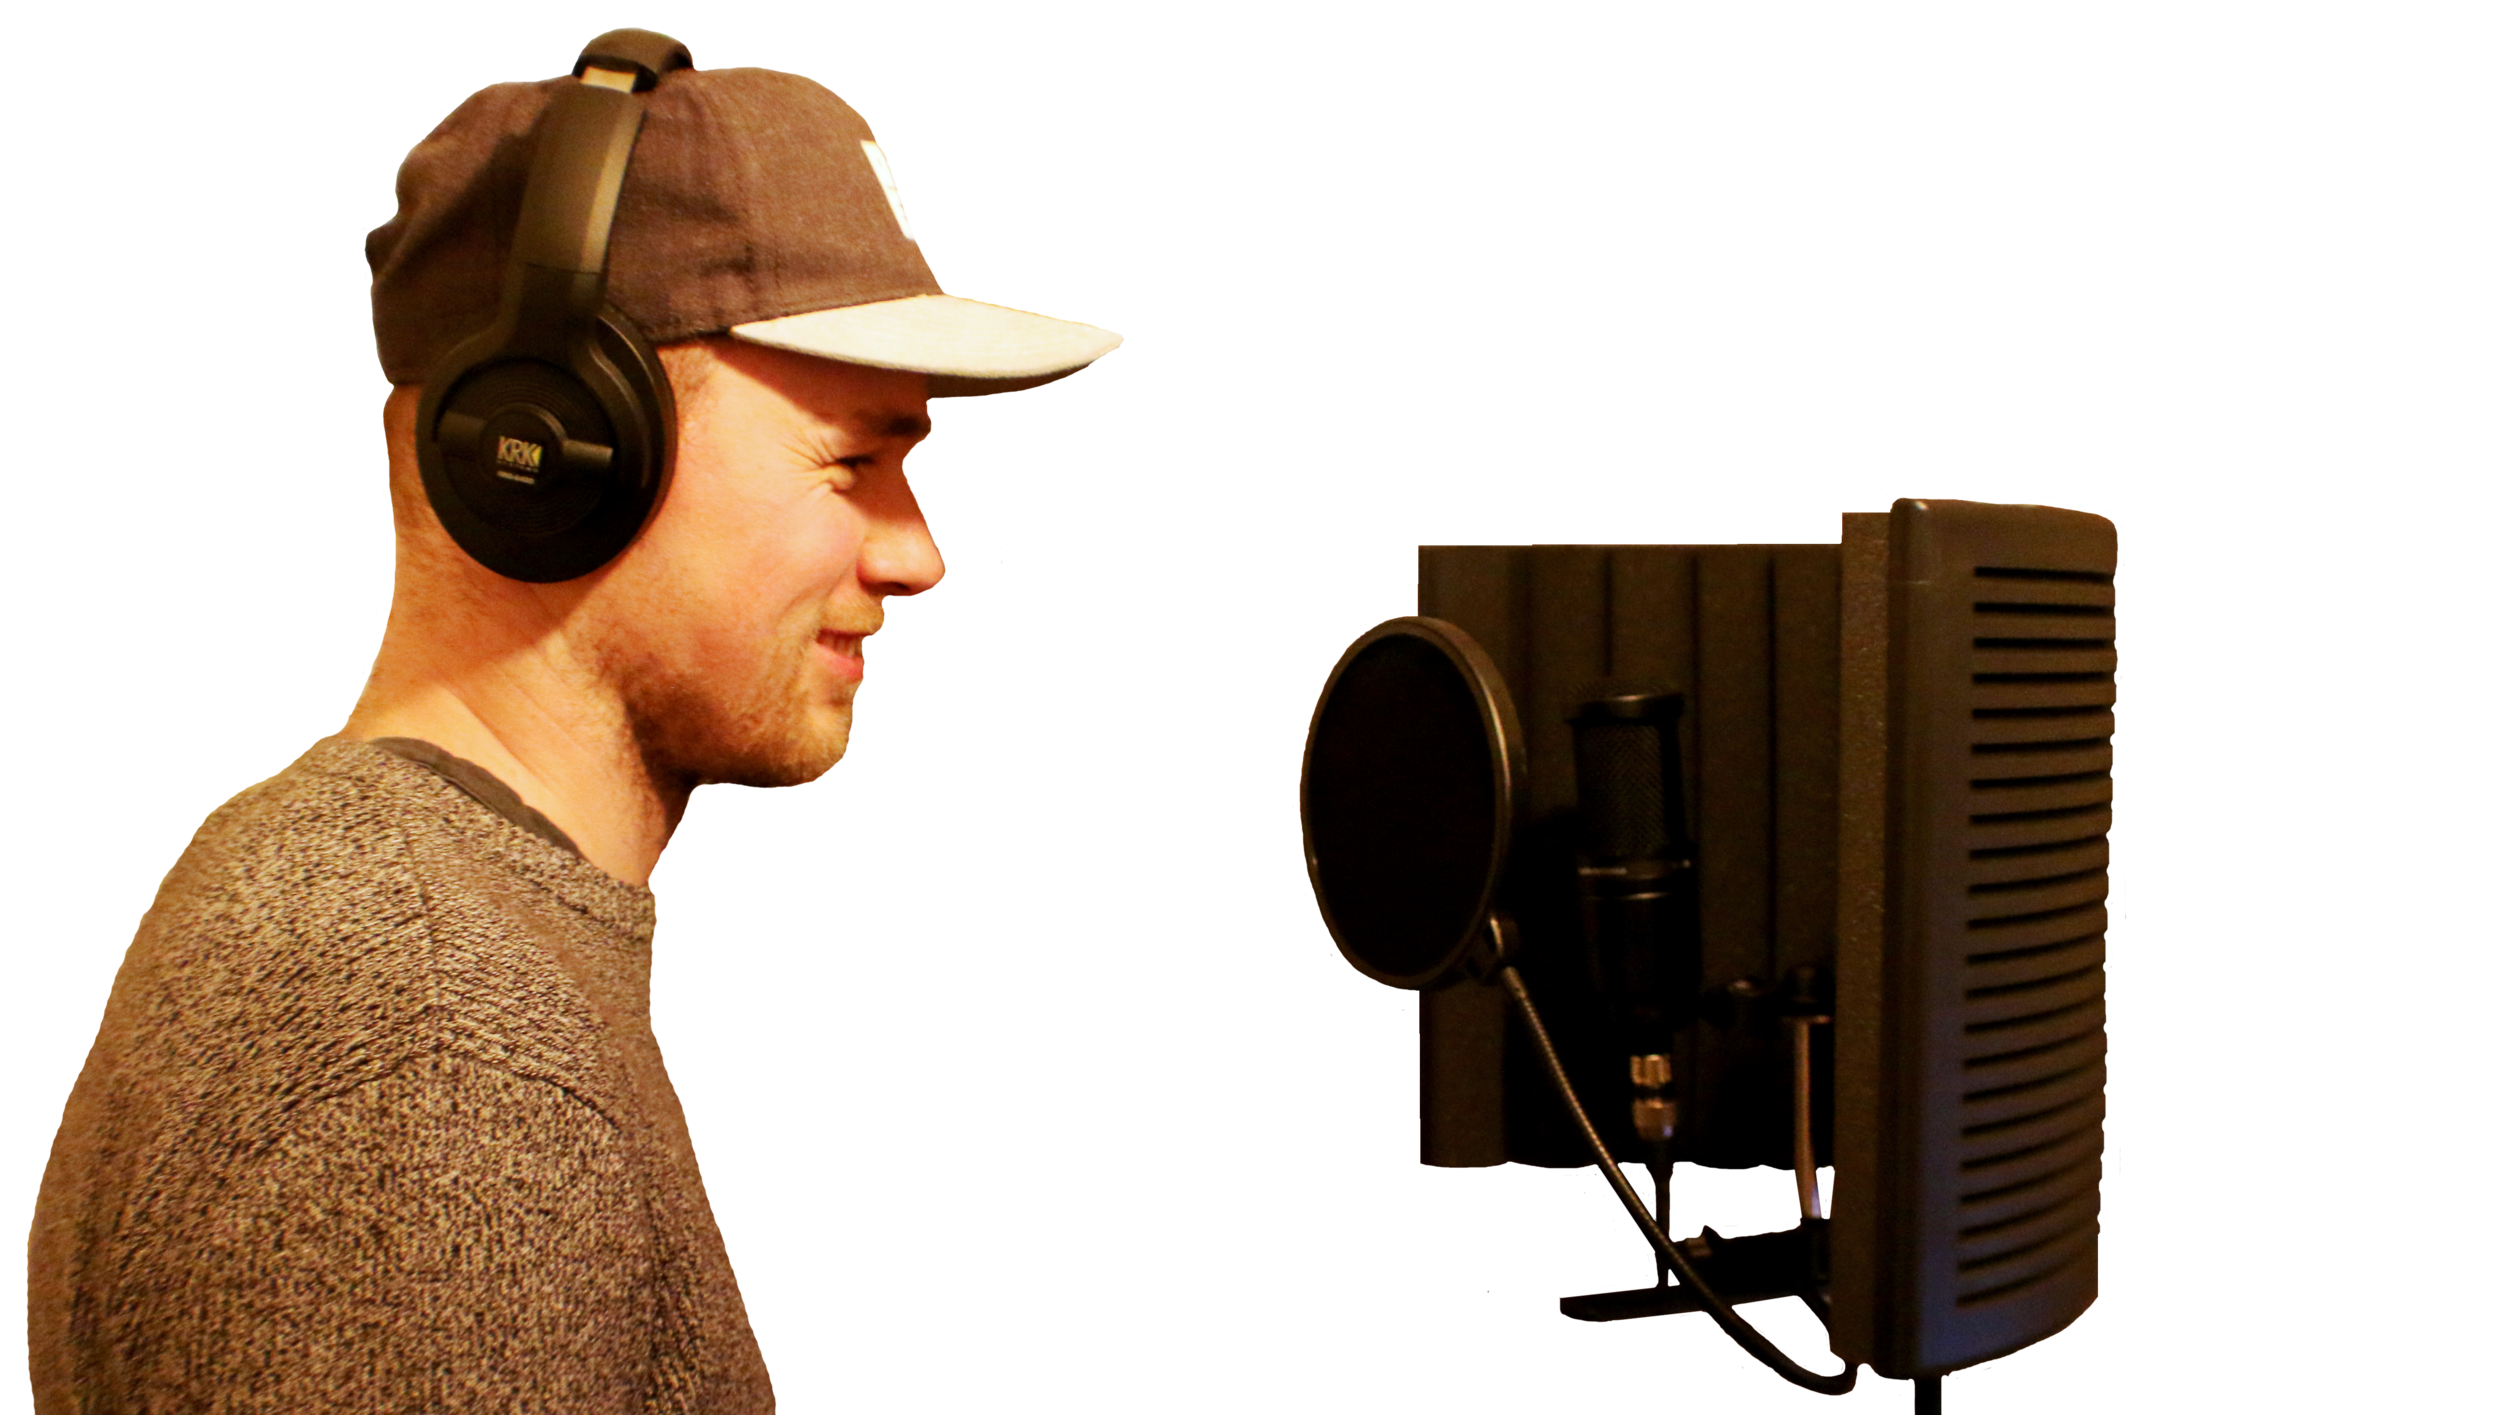 Joe recording his vocals in character as Ellis from Things That Go Bump